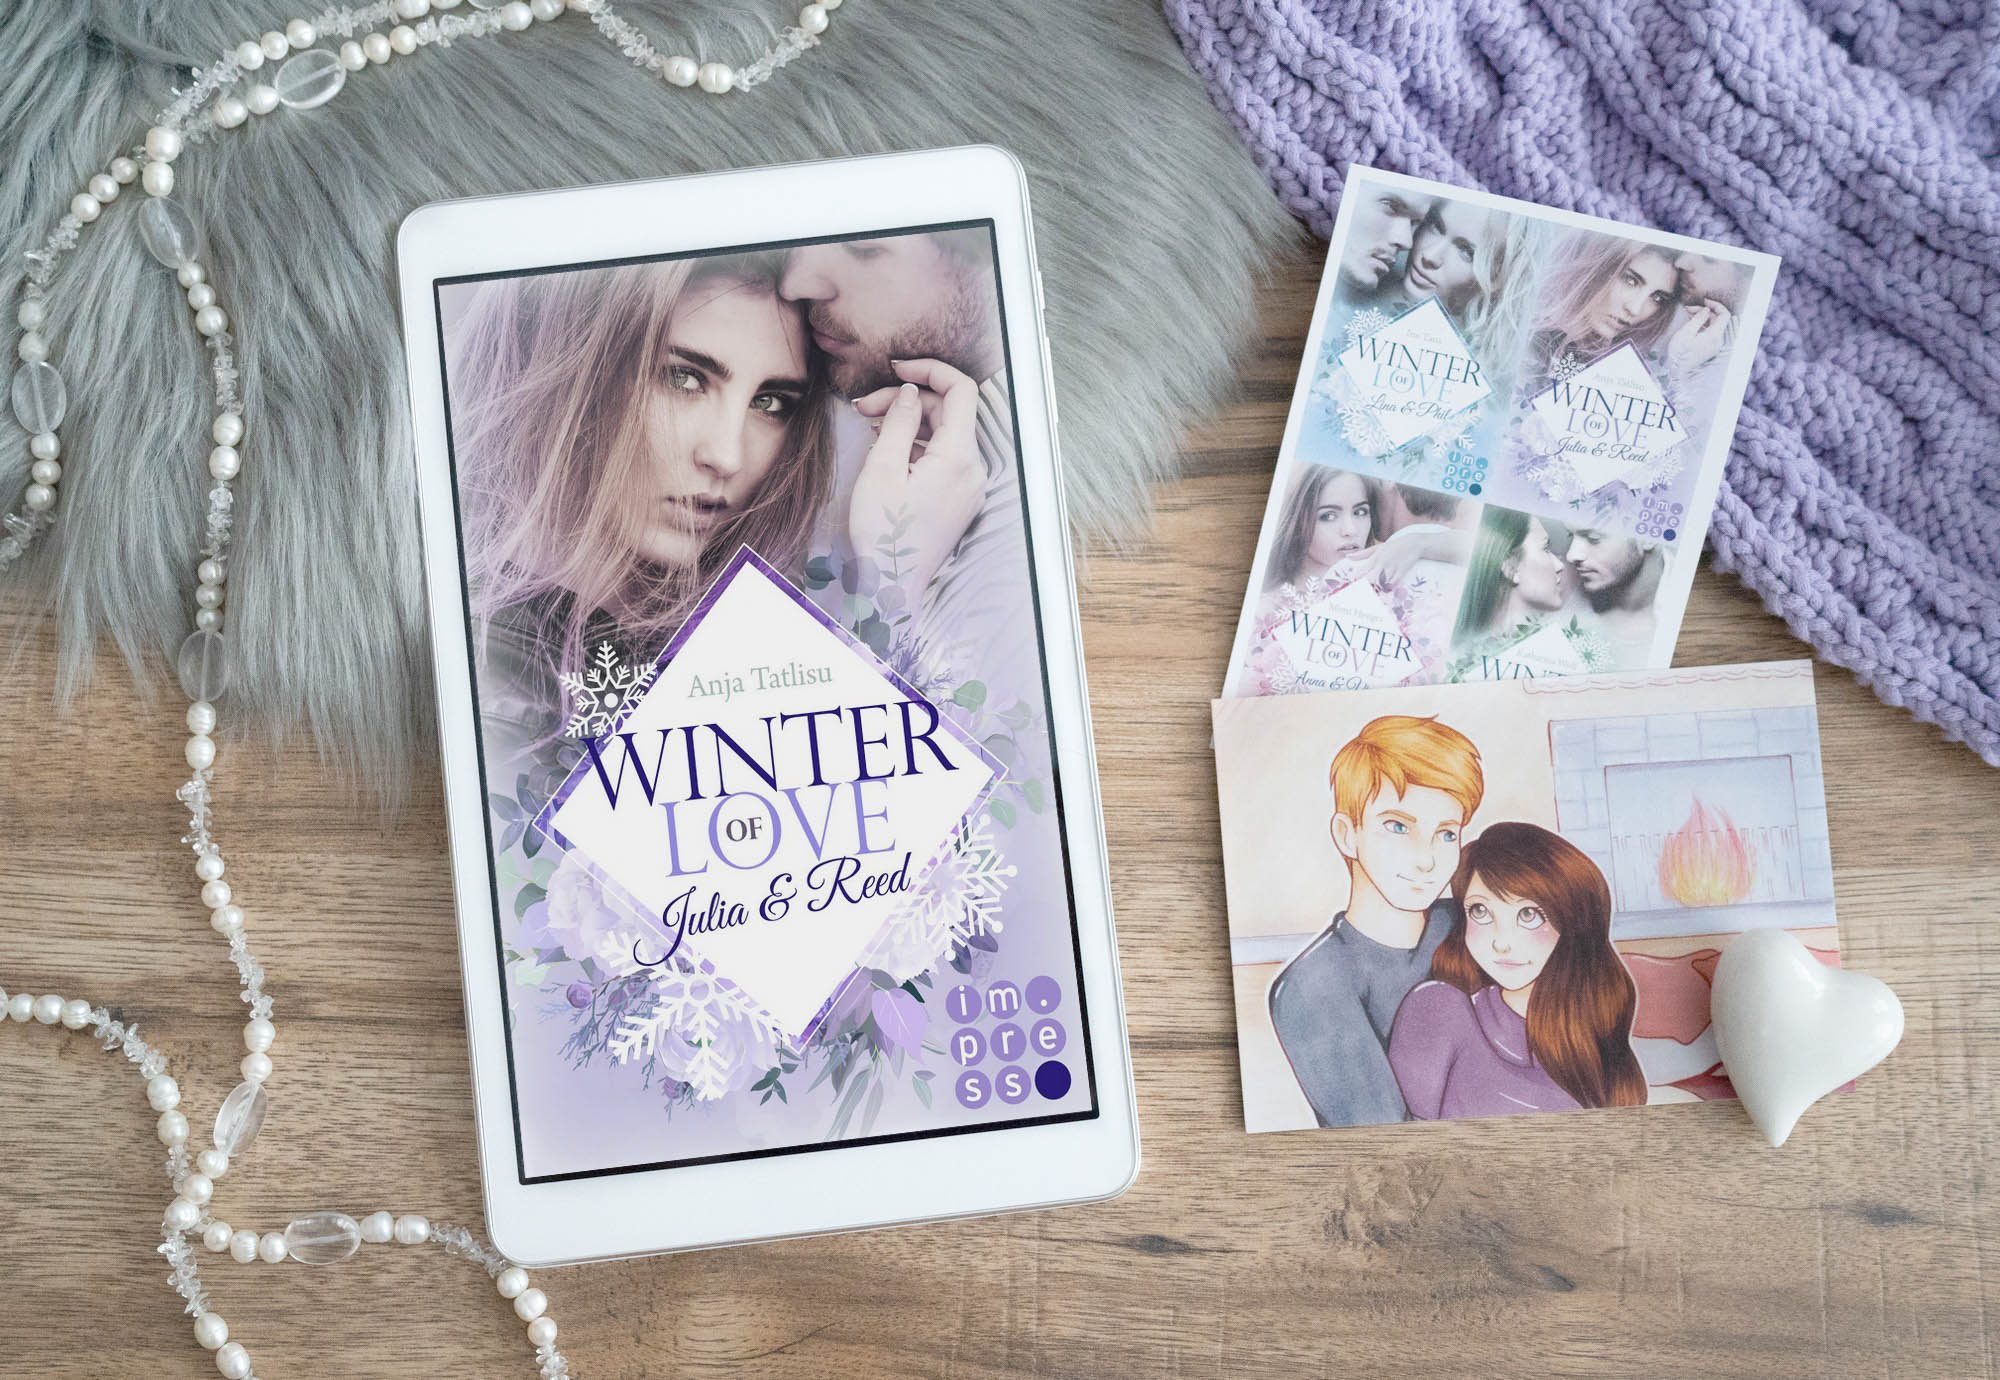 Winter of Love: Julia & Reed – Anja Tatlisu graphic